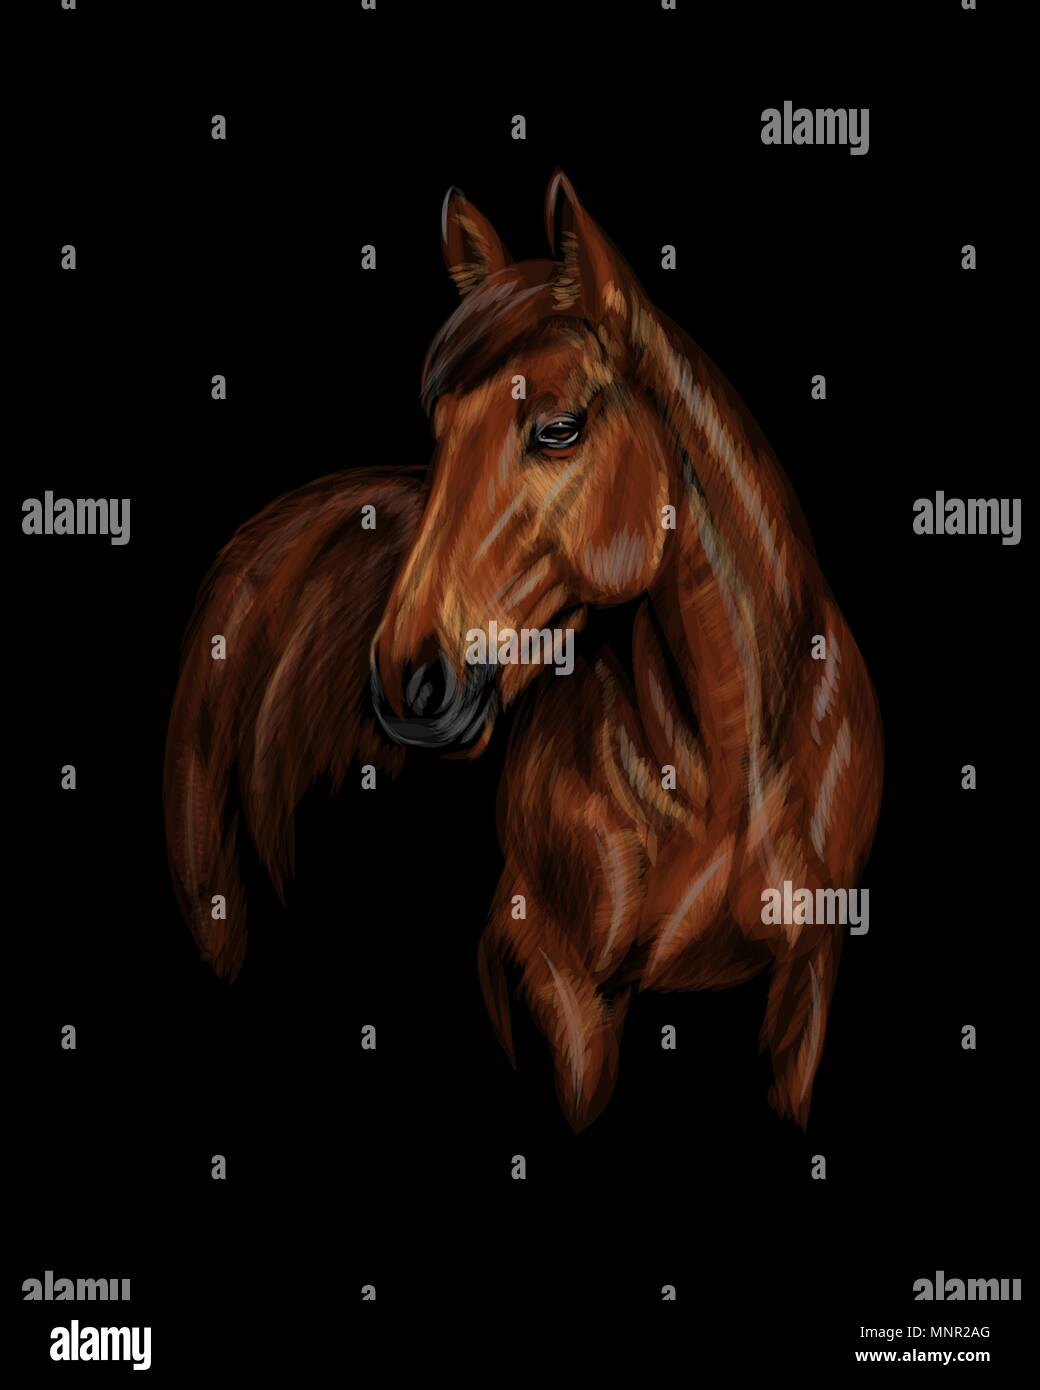 Portrait of the horse on the black background - Stock Vector